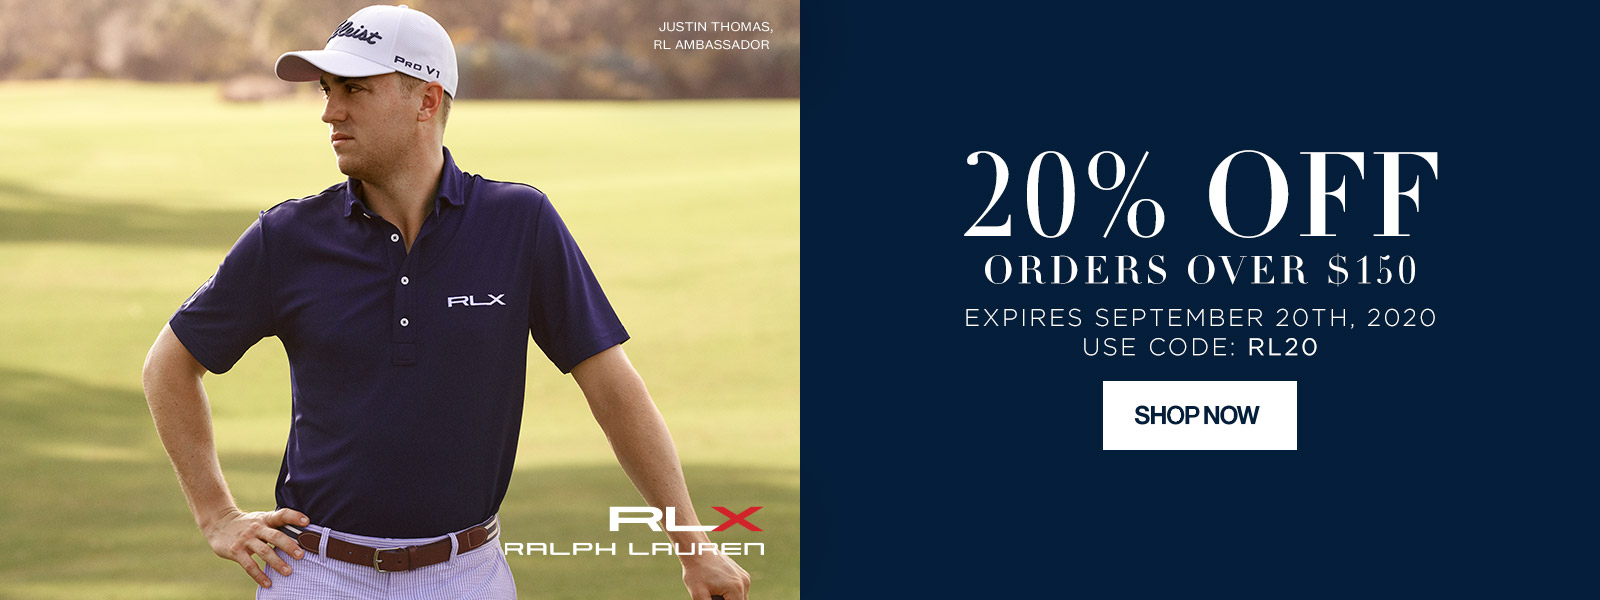 RLX Ralph Lauren - 20% off orders over $150 - Expires September 20th, 2020, Use Code: RL20